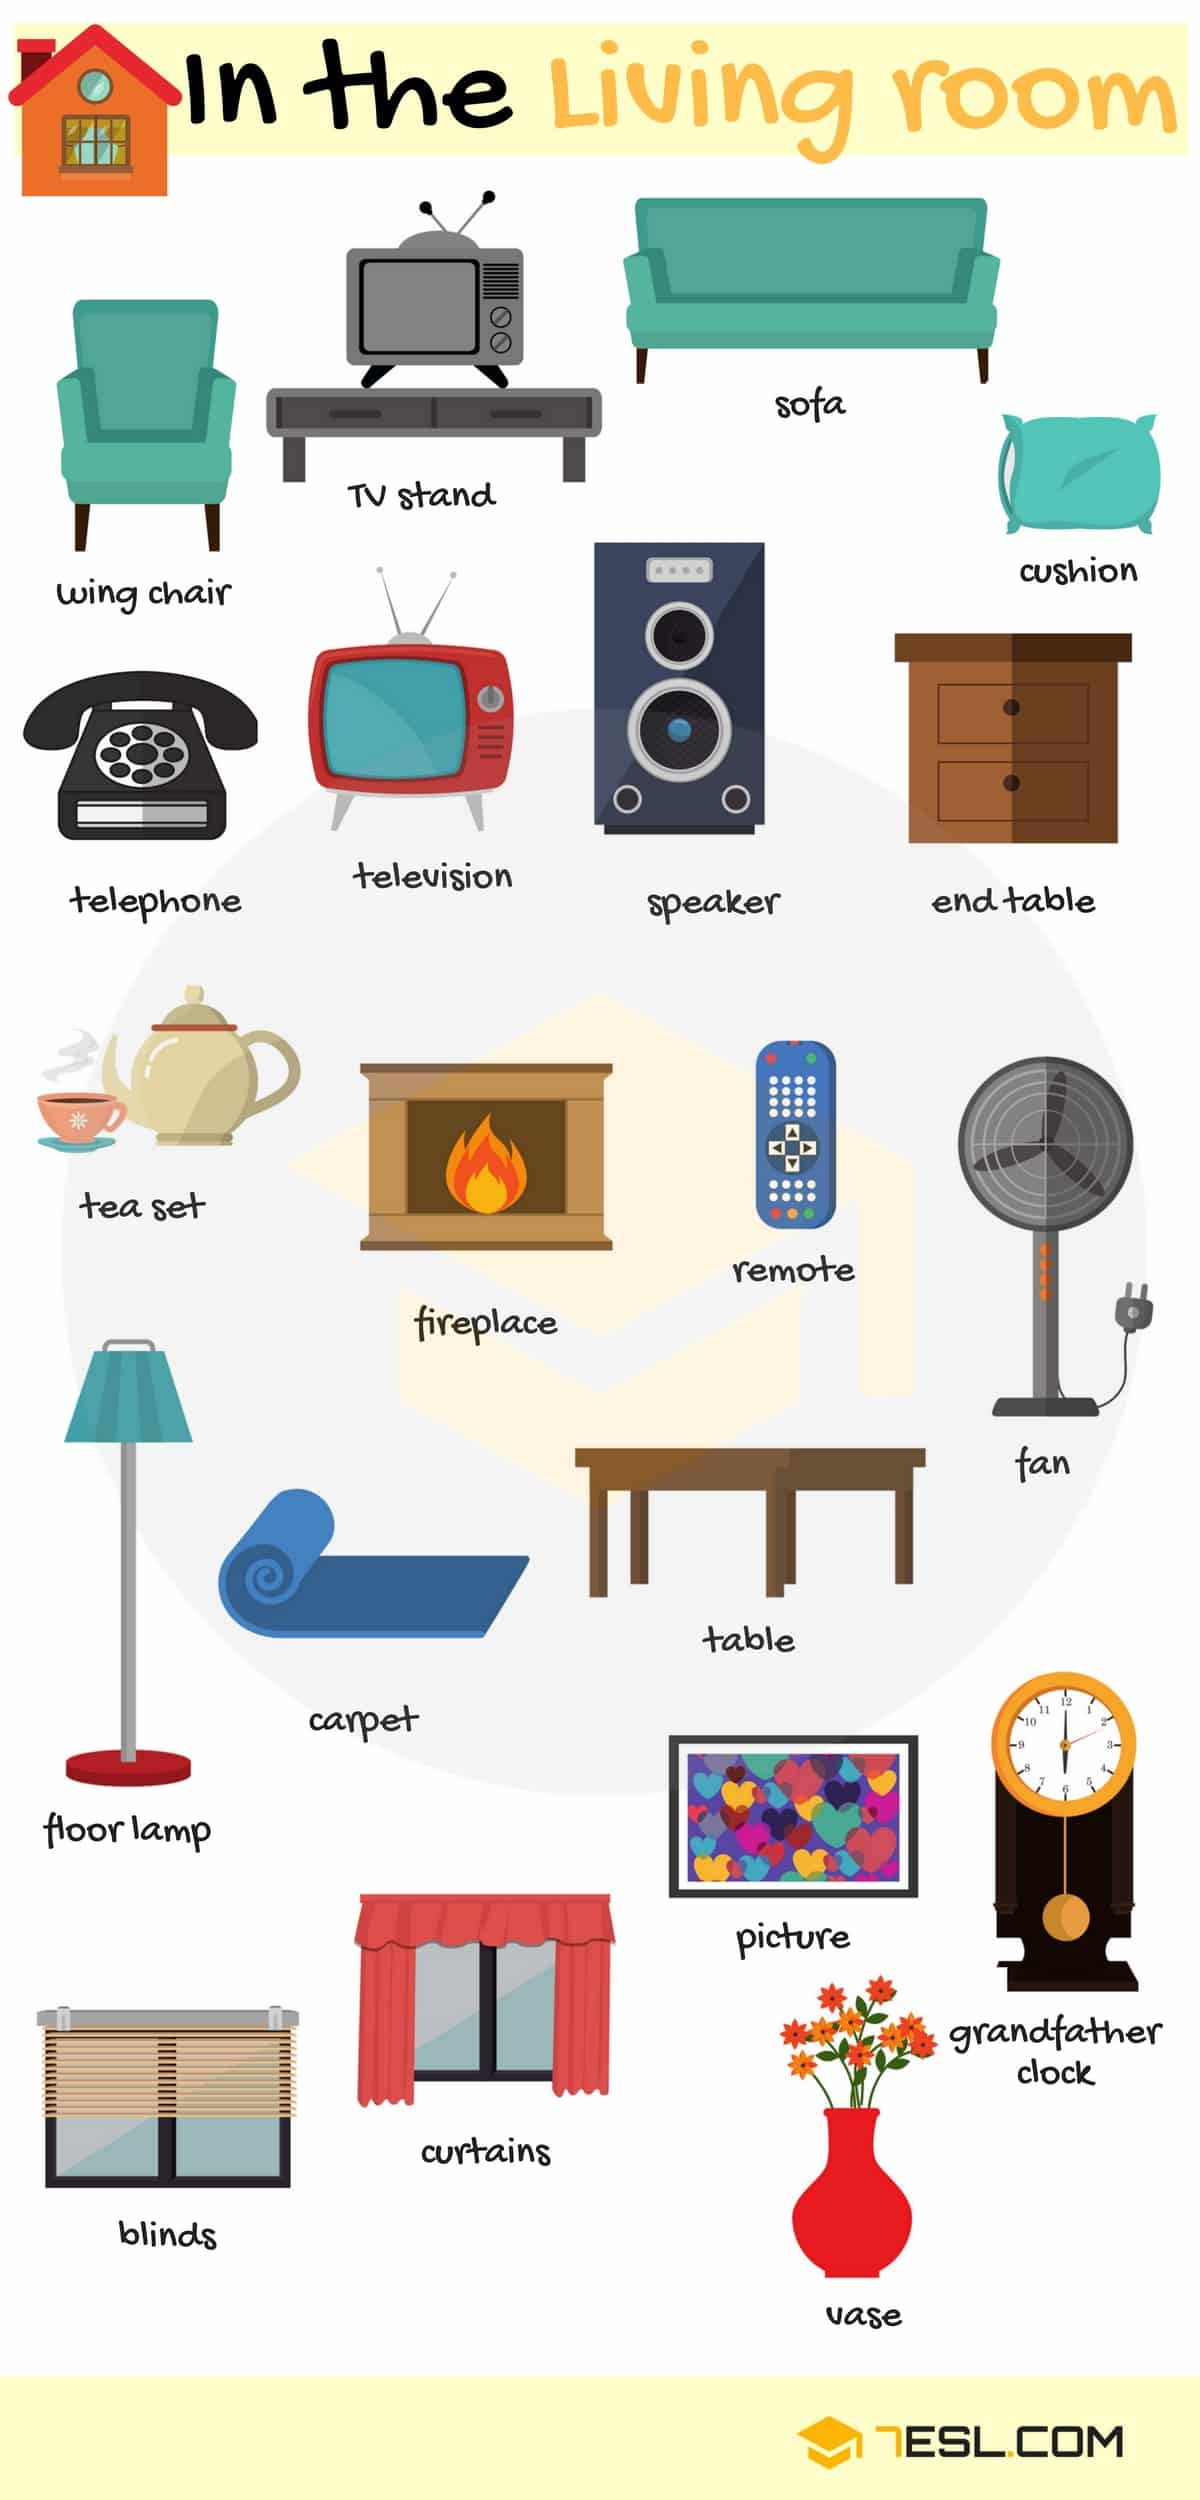 Furniture vocabulary in english rooms in a house 2